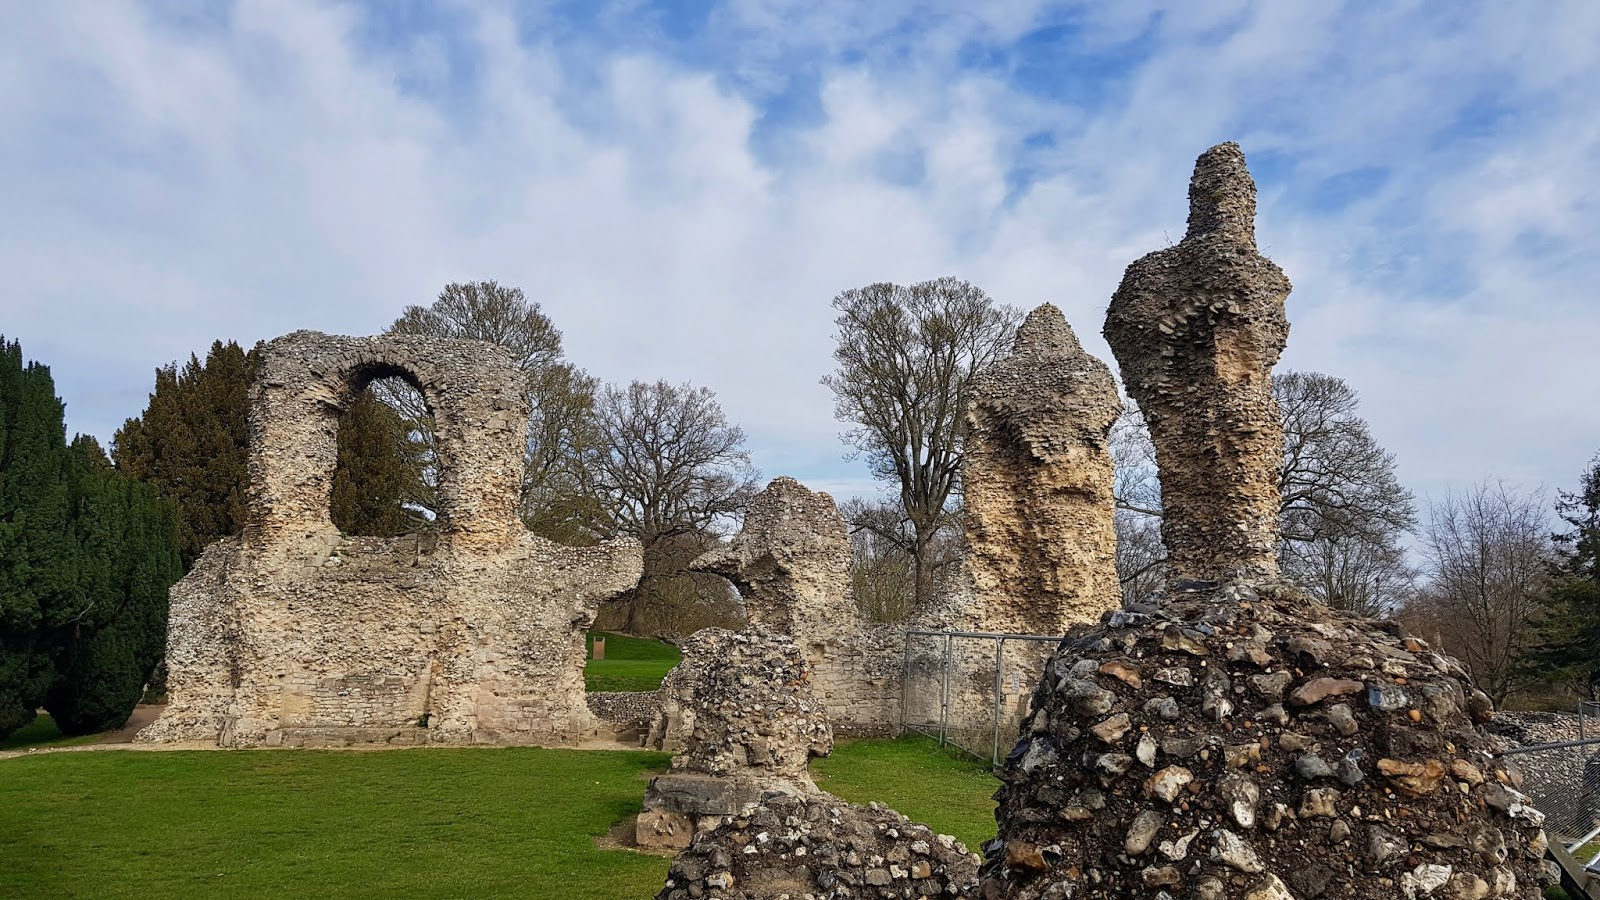 The ruins of Bury St Edmunds Abbey in the Abbey Gardens